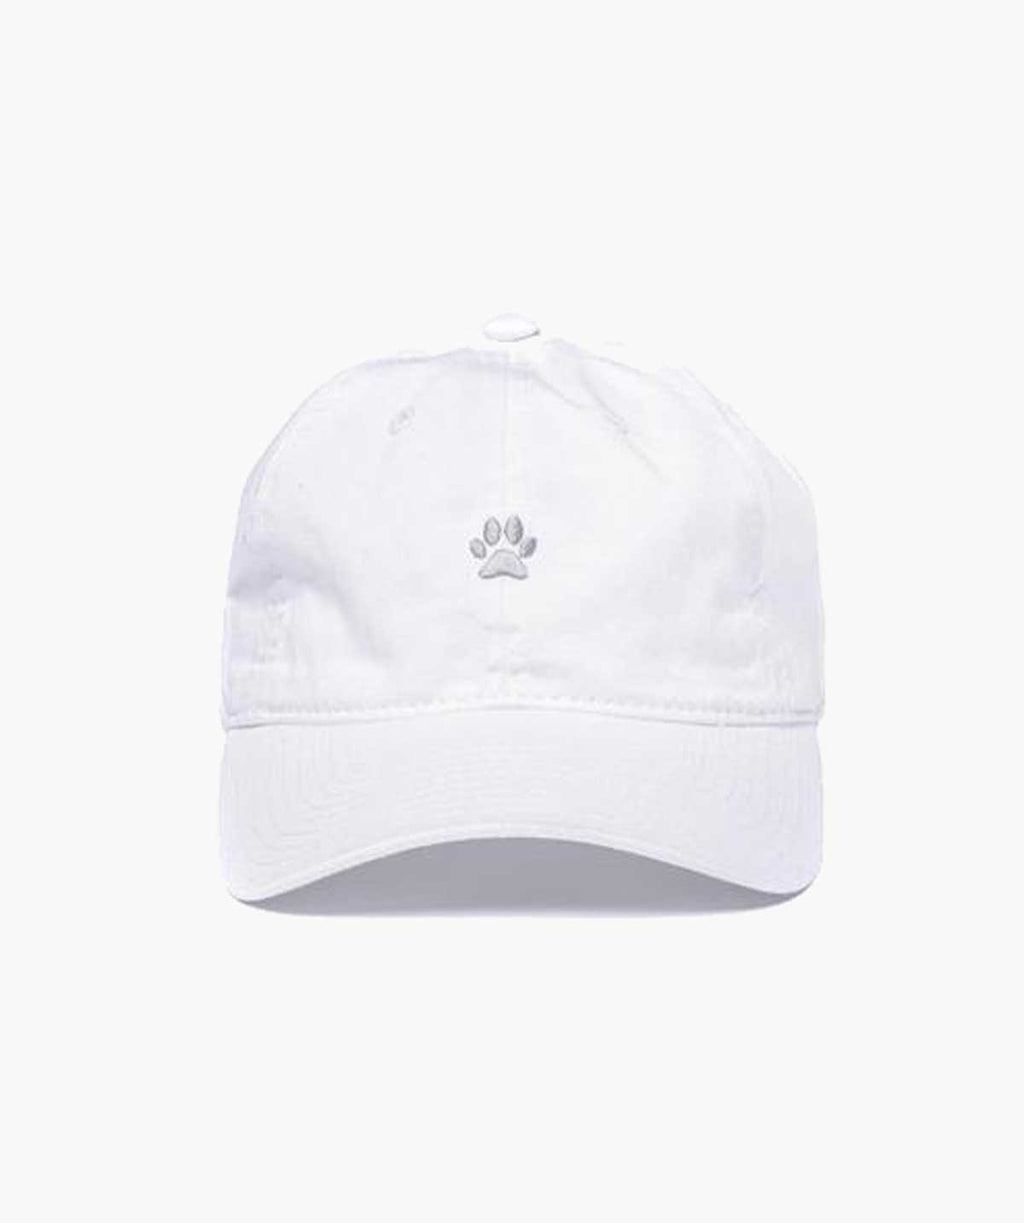 Dad Hat - White/Silver - MODLEASH